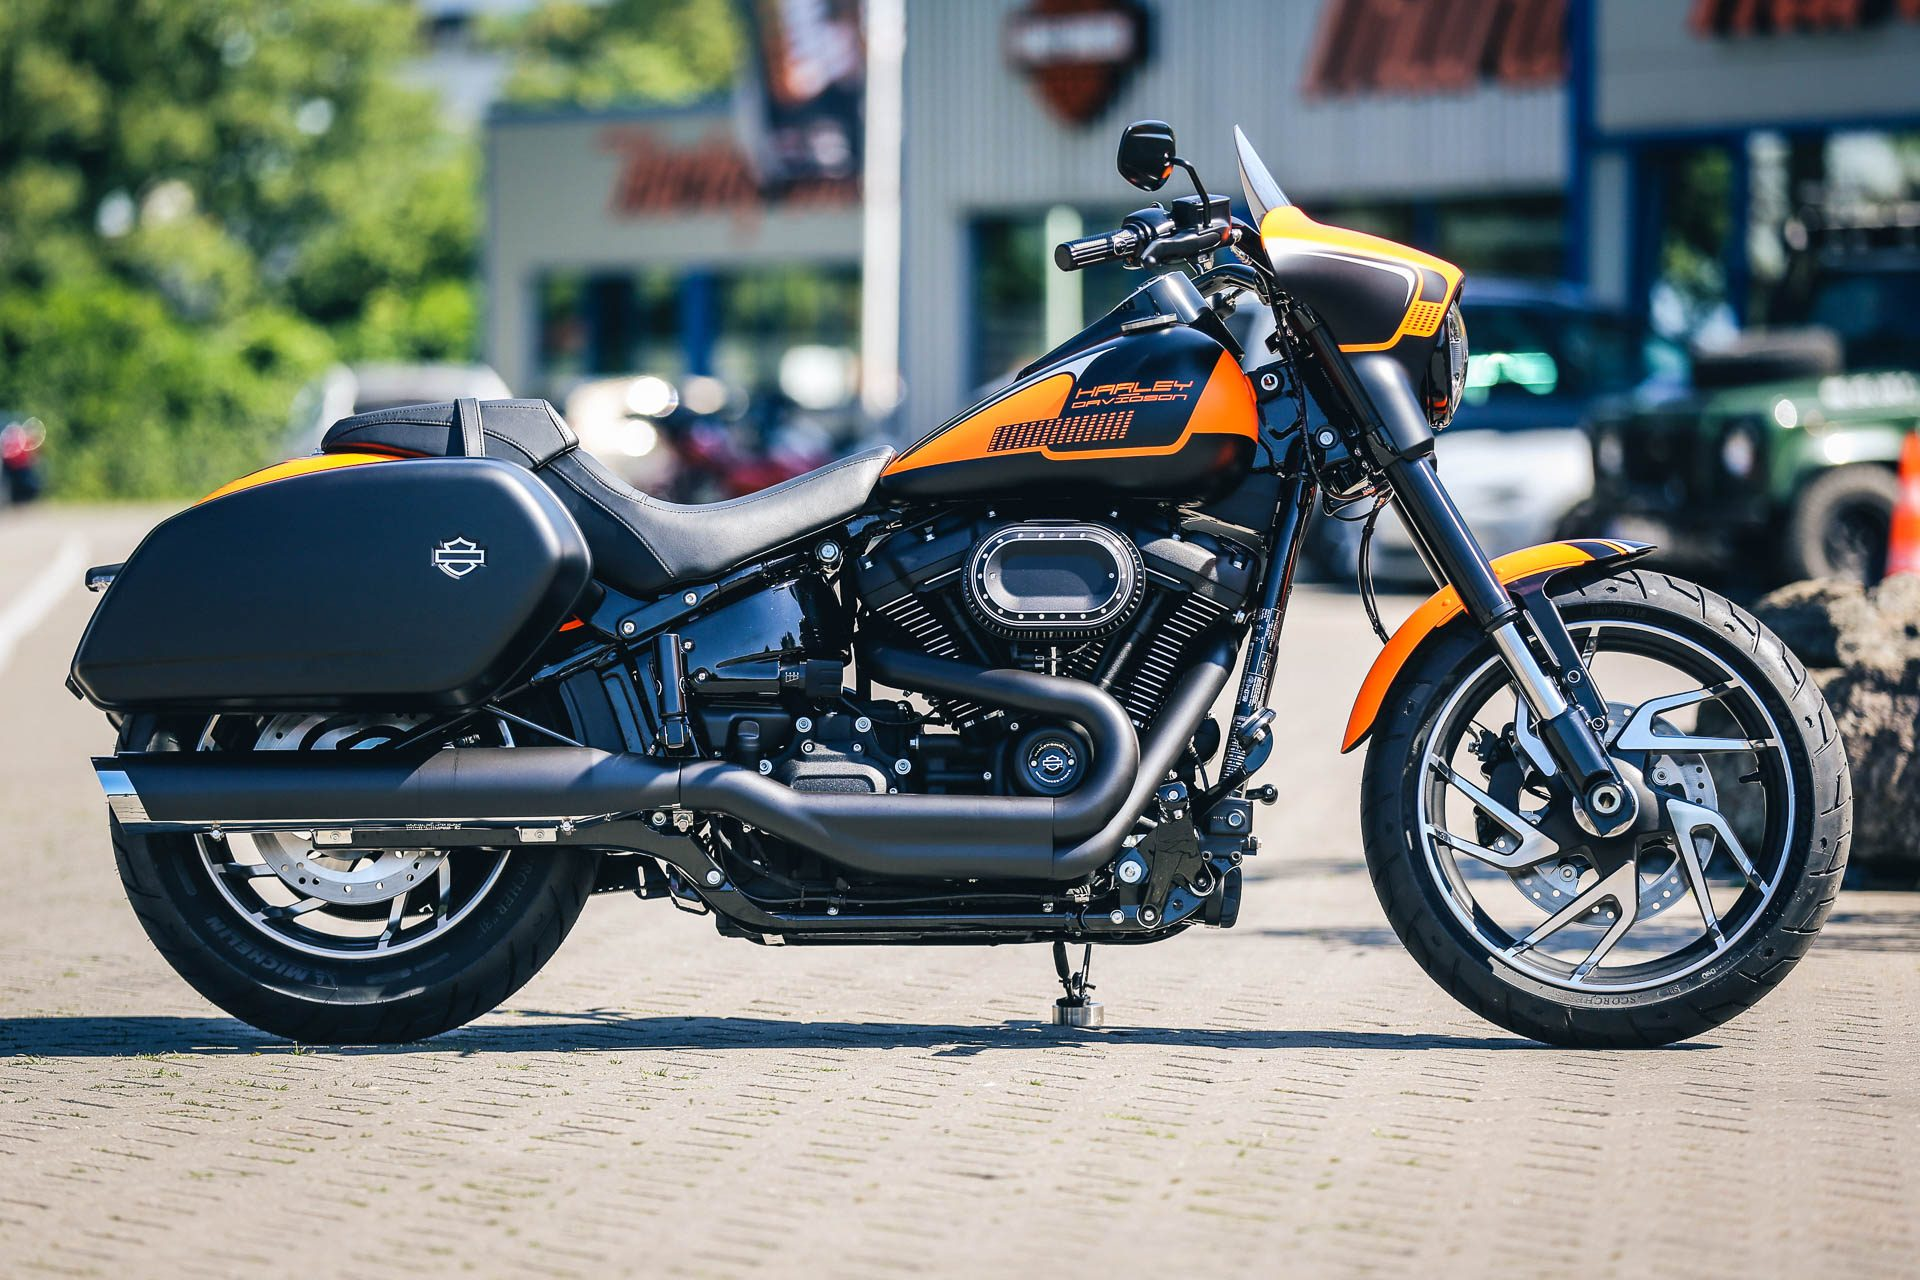 Thunderbike Orangeglide Customized H D Softail Sport